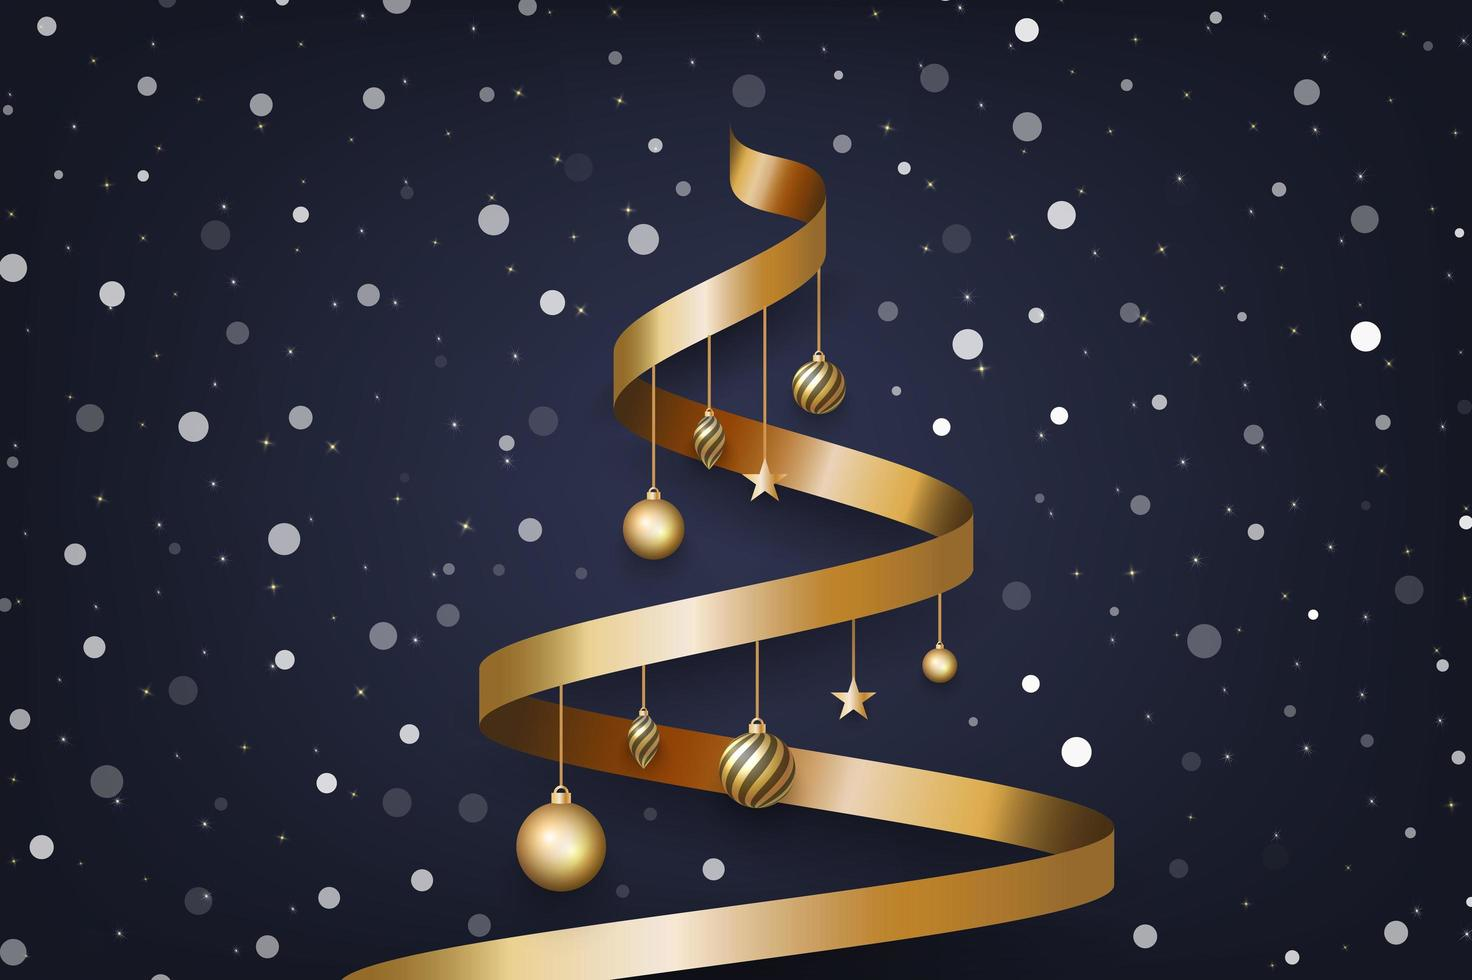 Christmas background with tree made of golden ribbon and snow vector